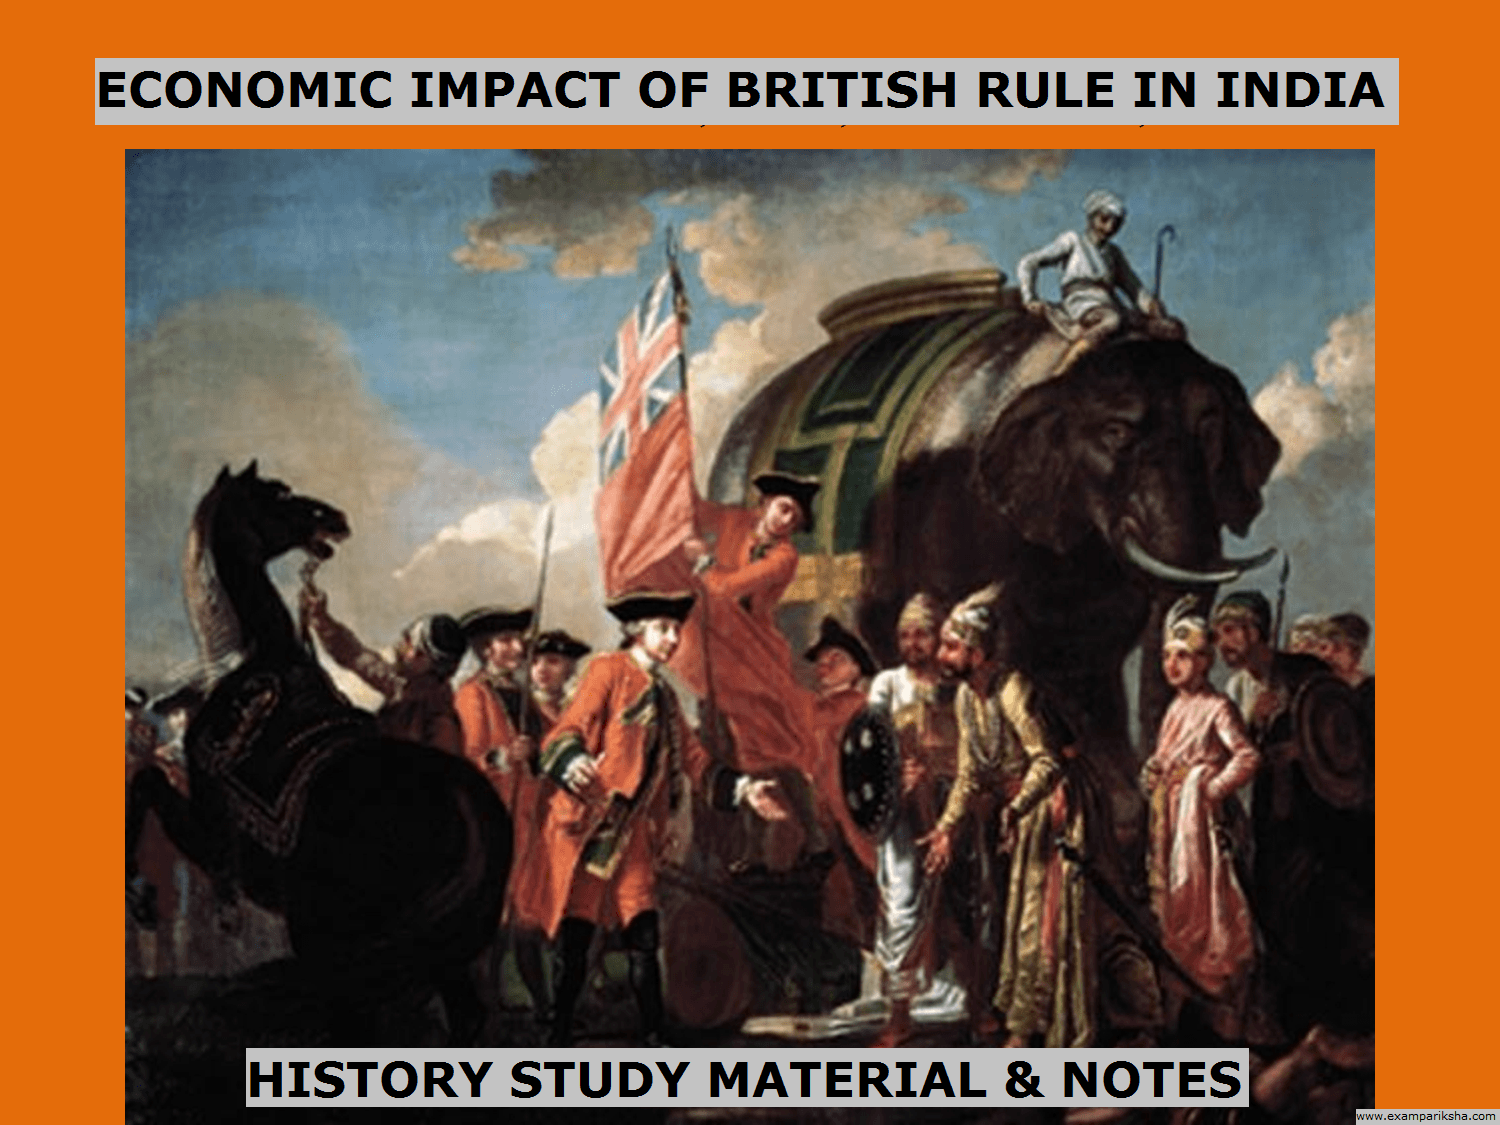 the british raj essay View british raj research papers on academiaedu for free.